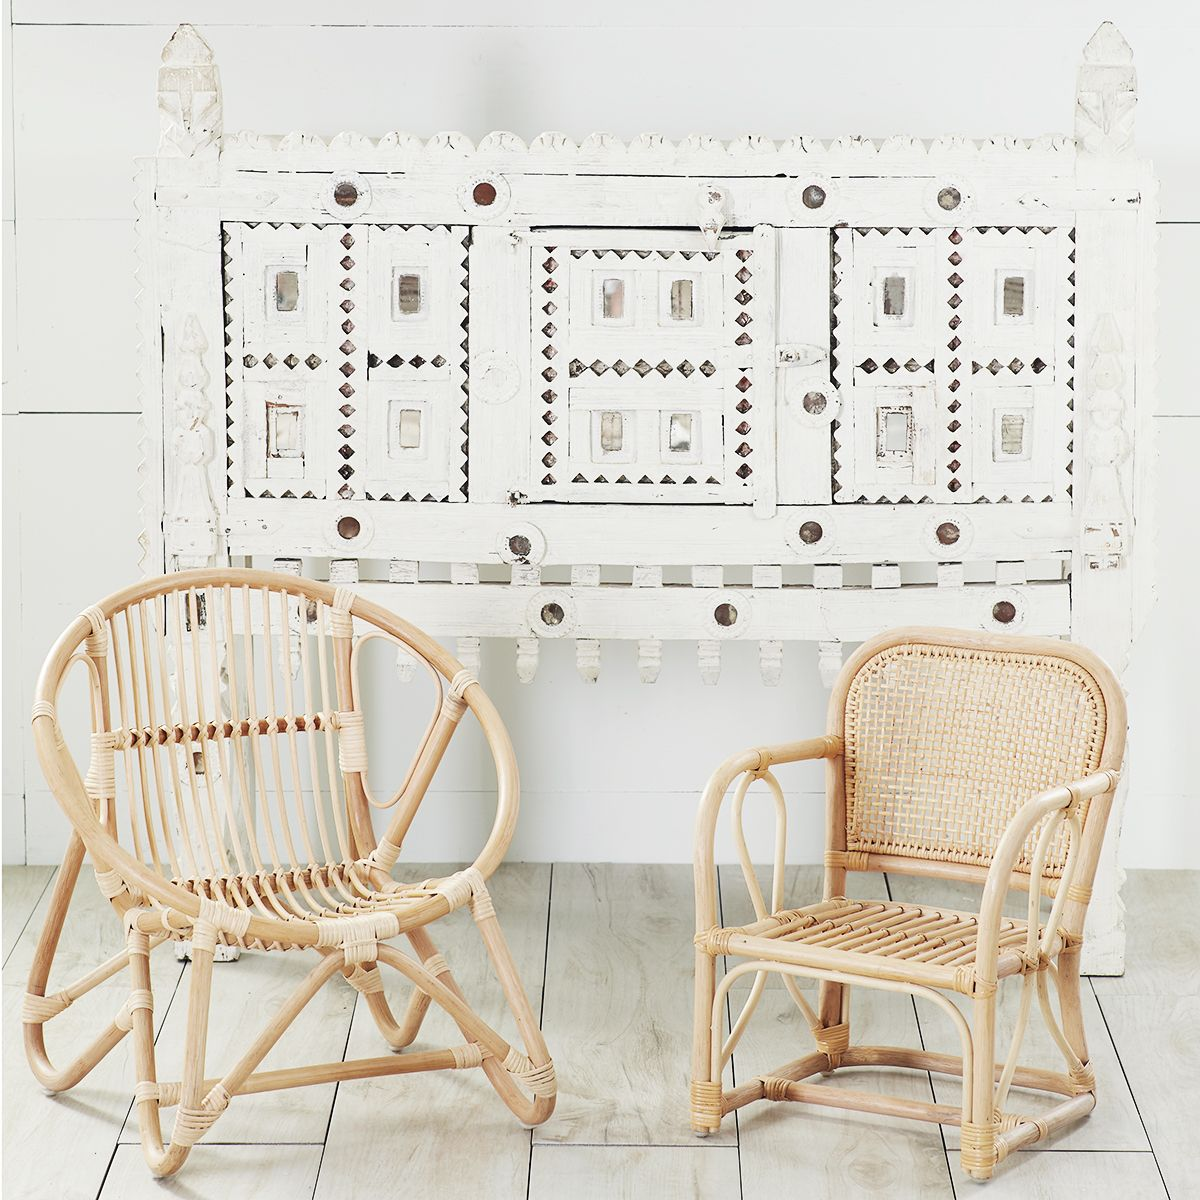 Copa Rattan Armchair Products In 2019 Rattan Armchair